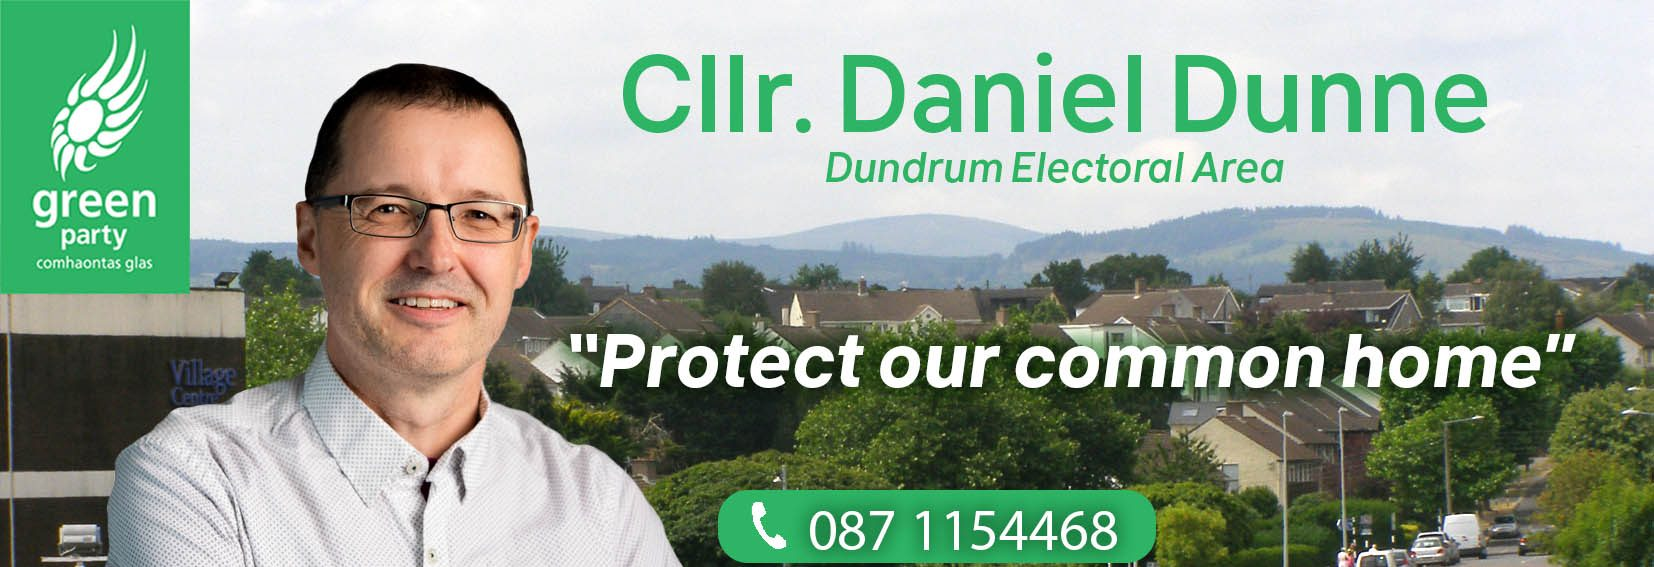 Daniel Dunne Local Election Candidate Dundrum